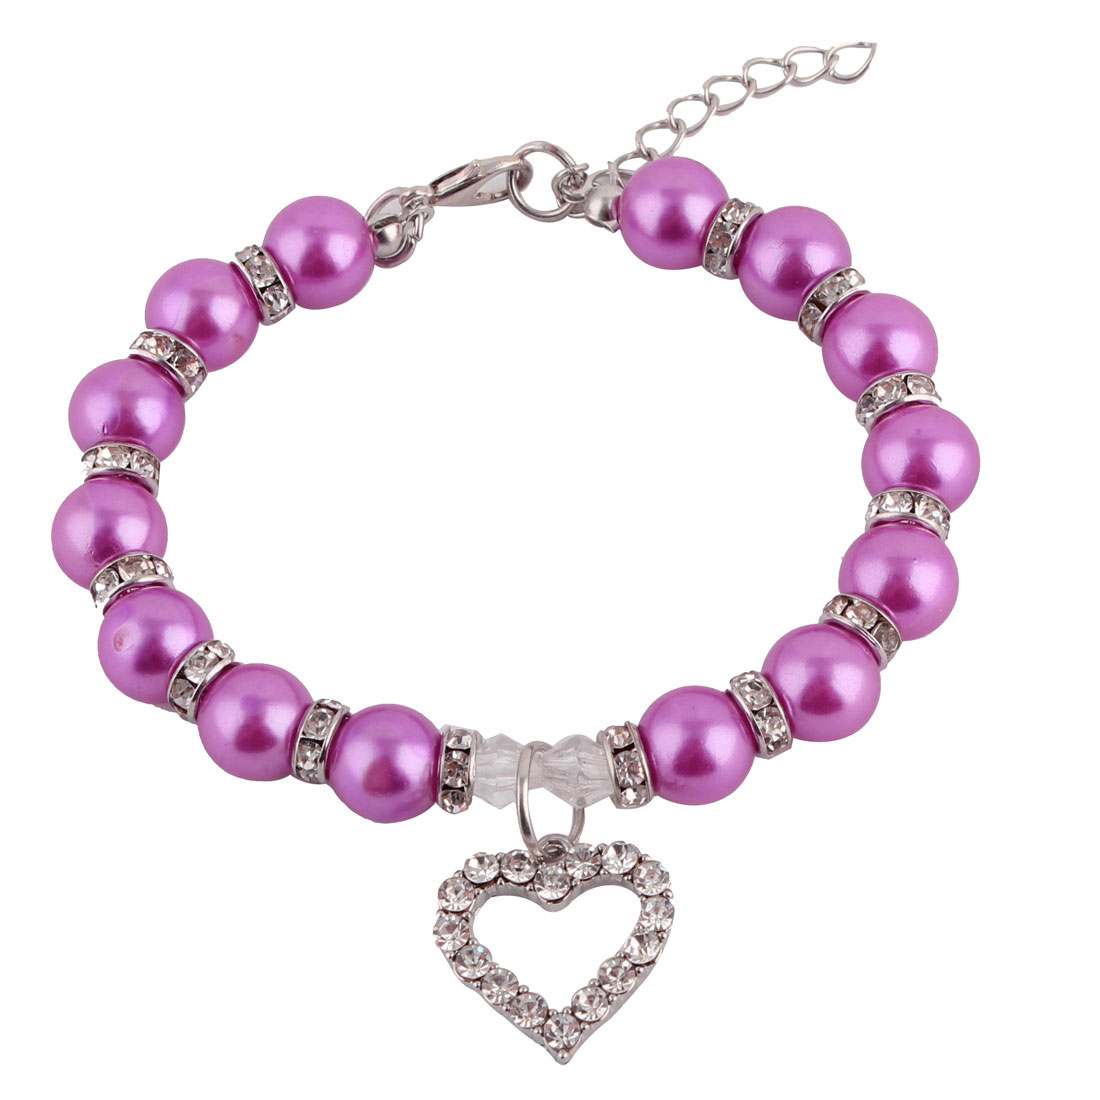 Pet Dog Plastic Beads Linked Heart Shaped Pendant Decor Collar Necklace Purple